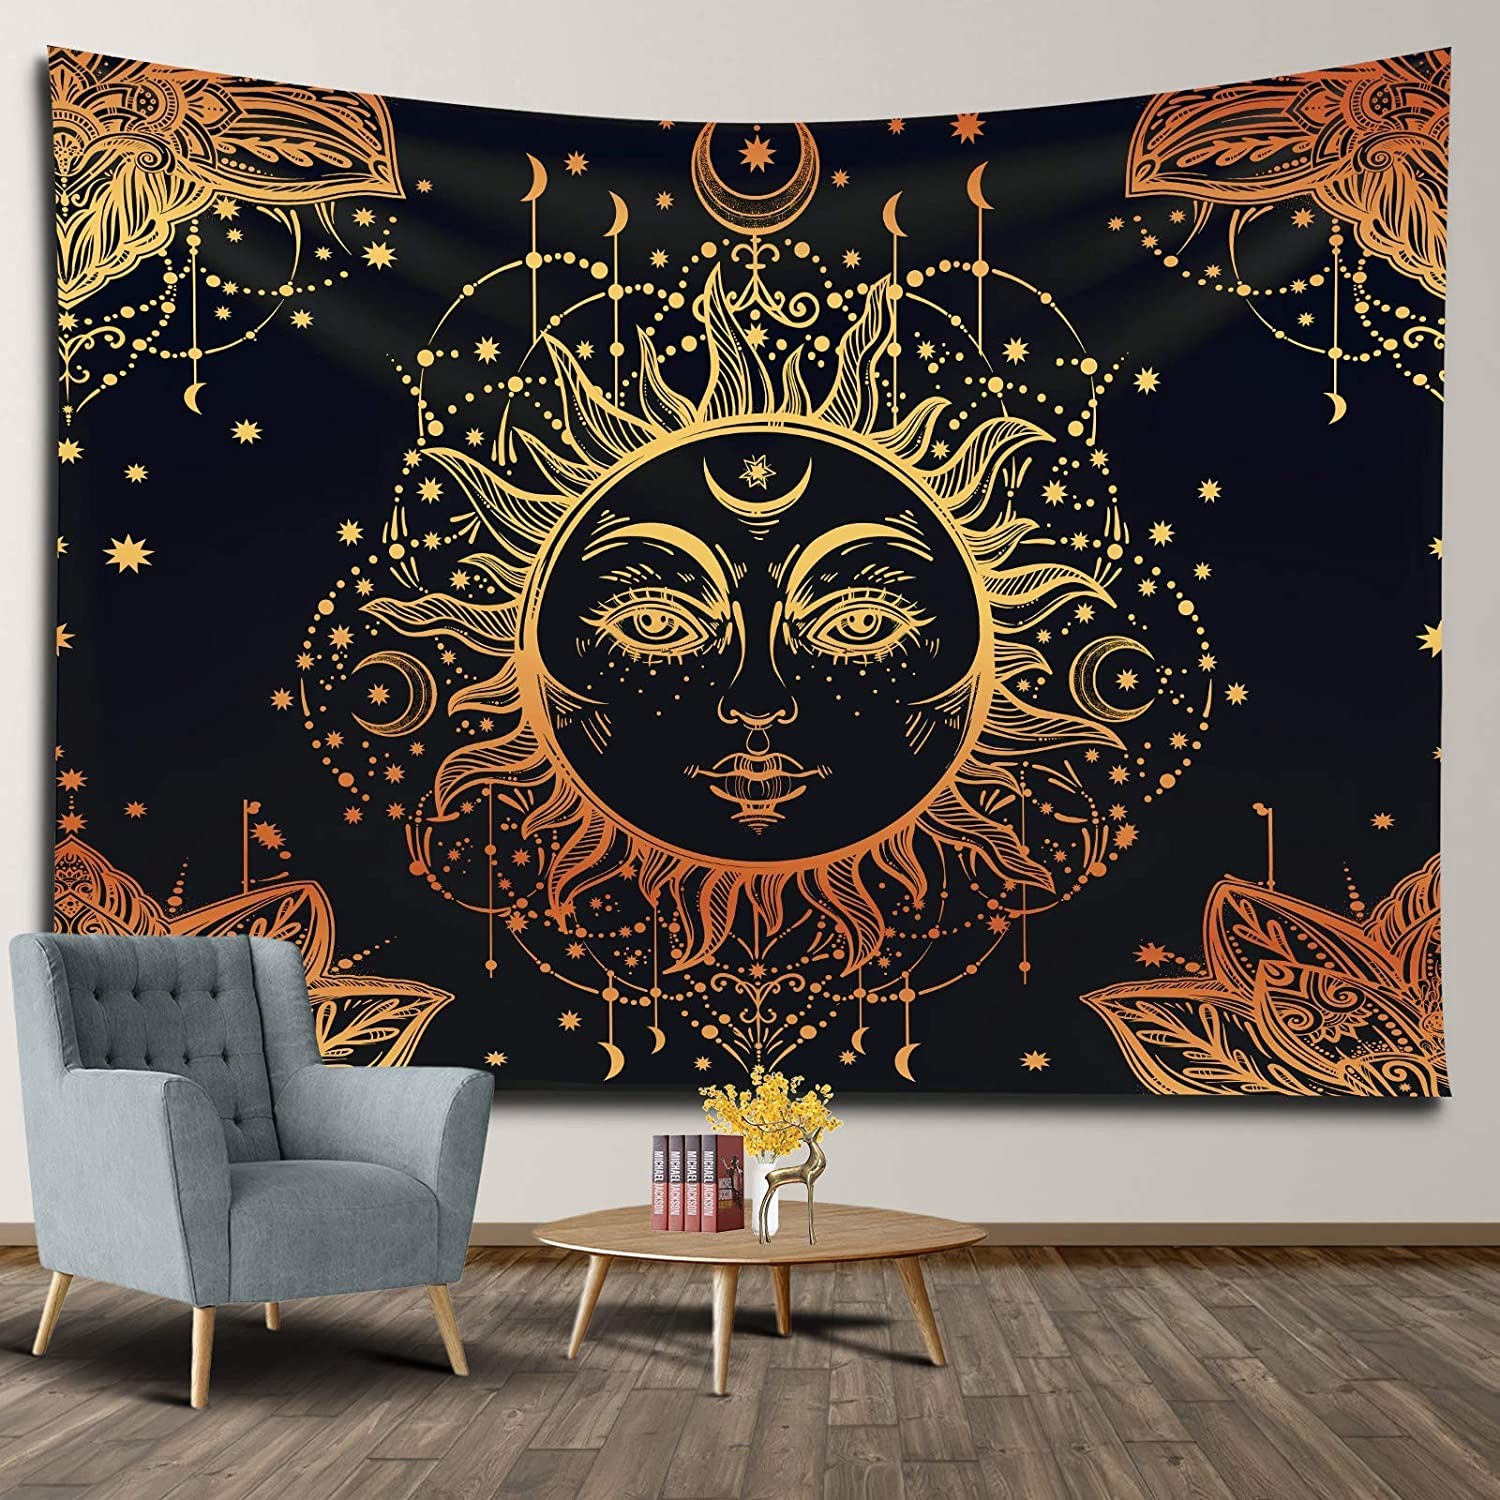 APKOL Sun Fort Worth Mall and Max 57% OFF Moon Tapestry Black Psyche Hanging Wall Golden